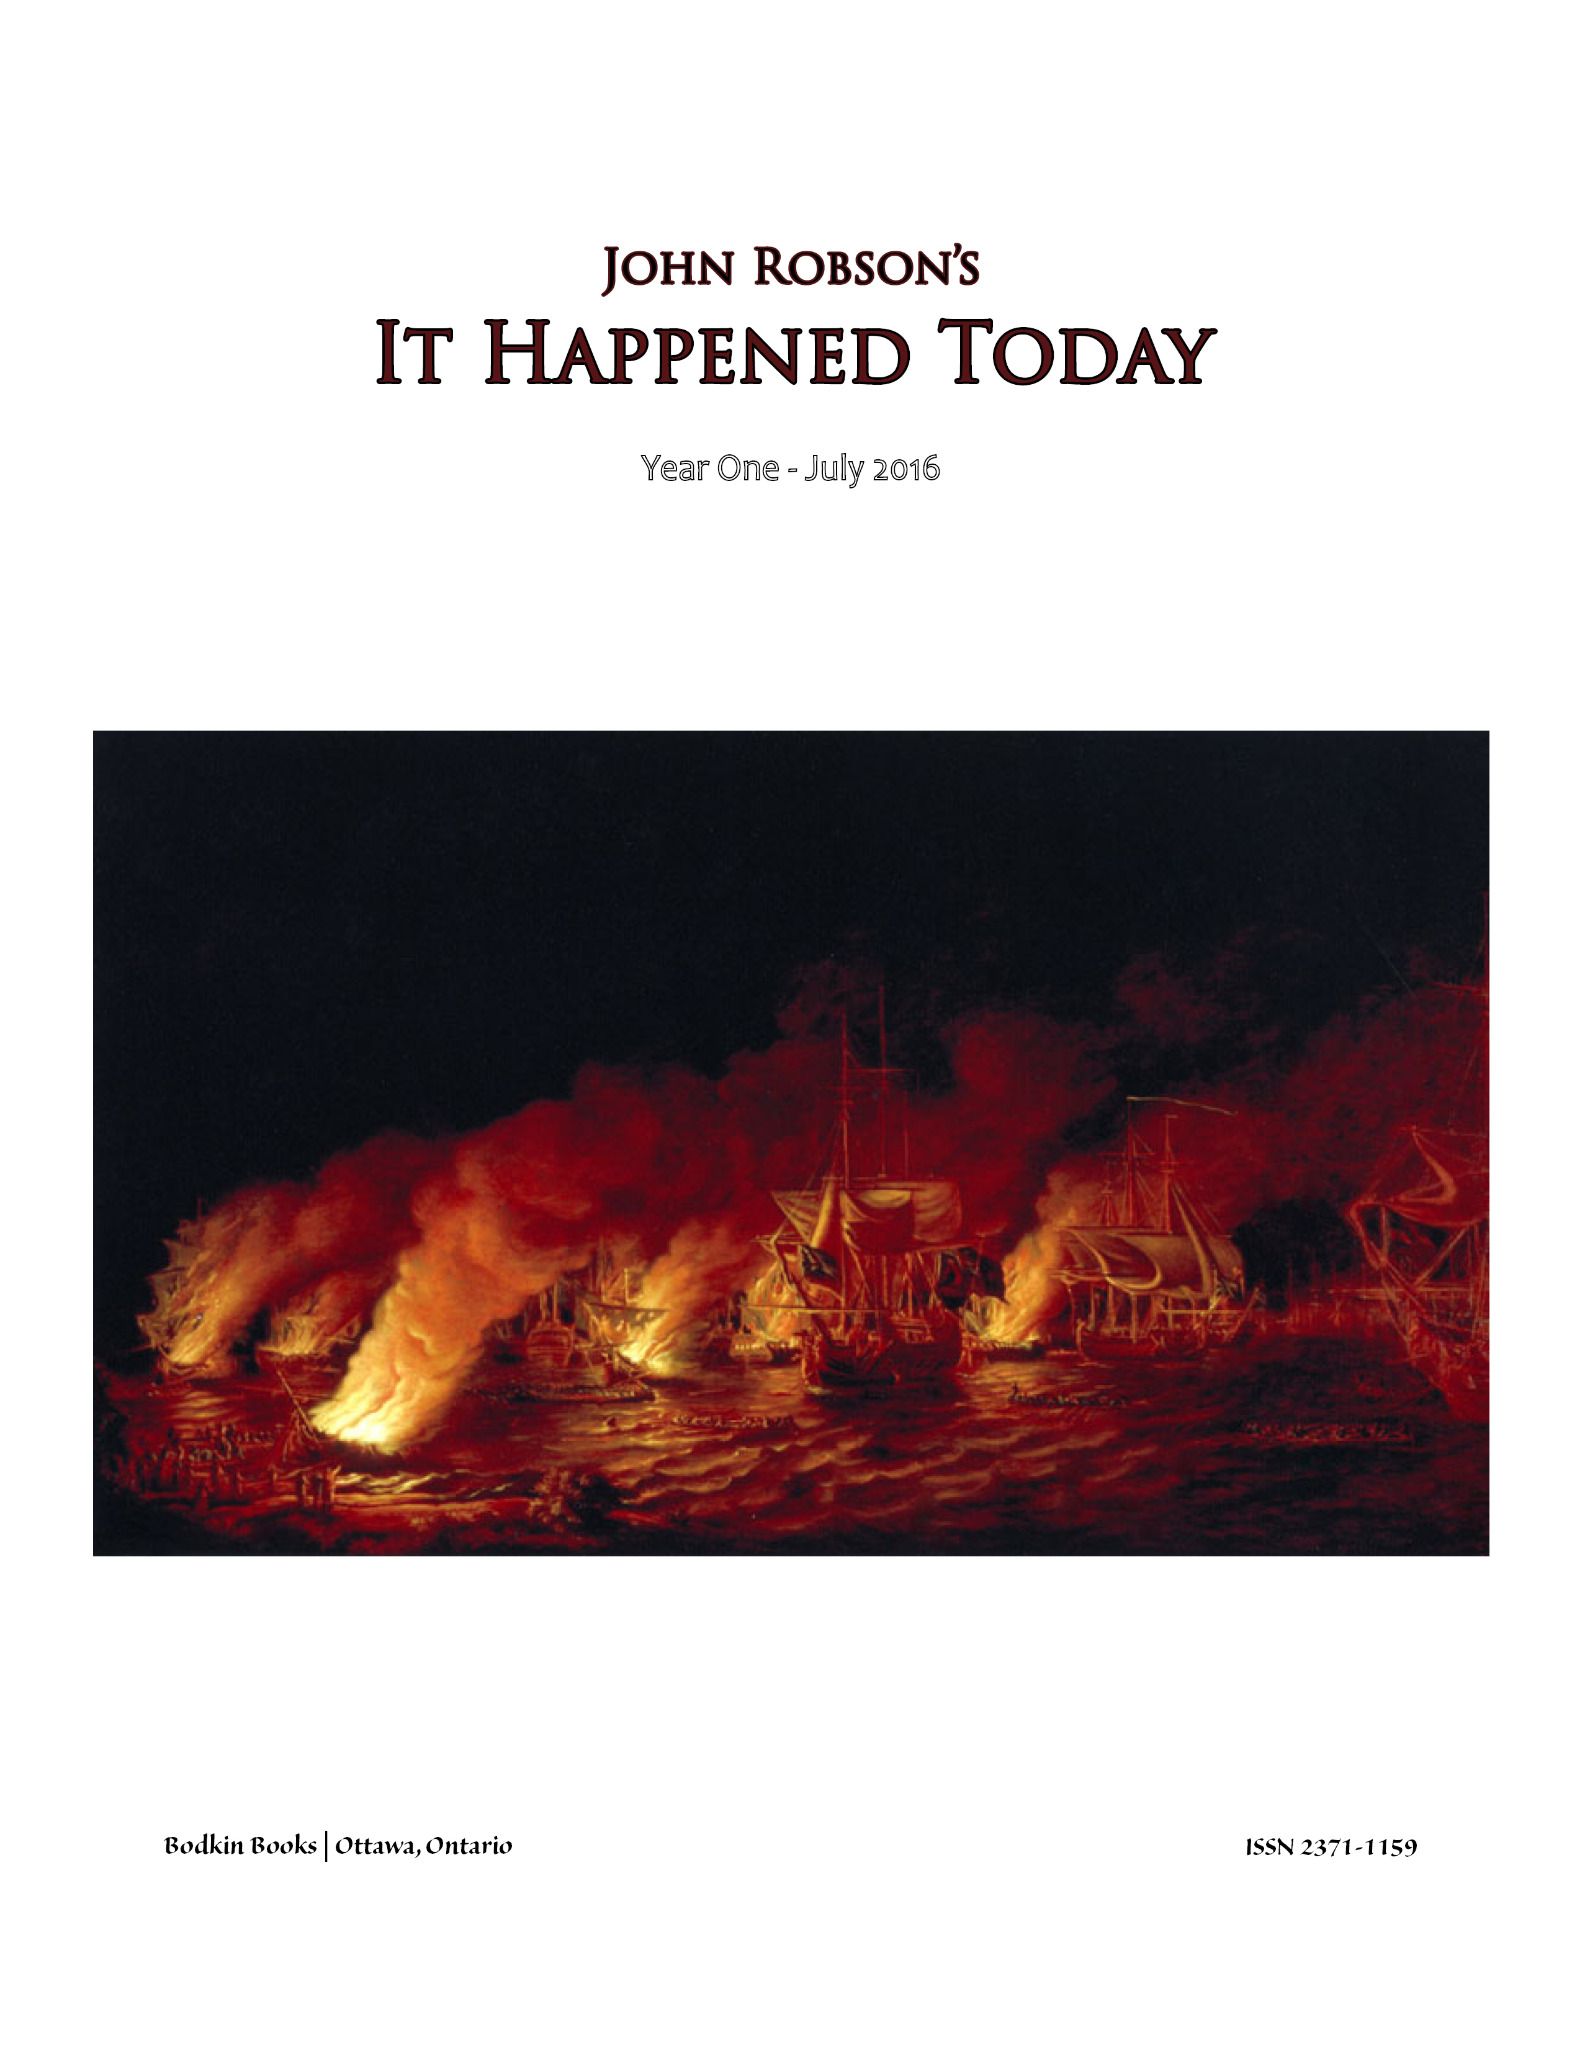 John Robson's It Happened Today - Year One - July